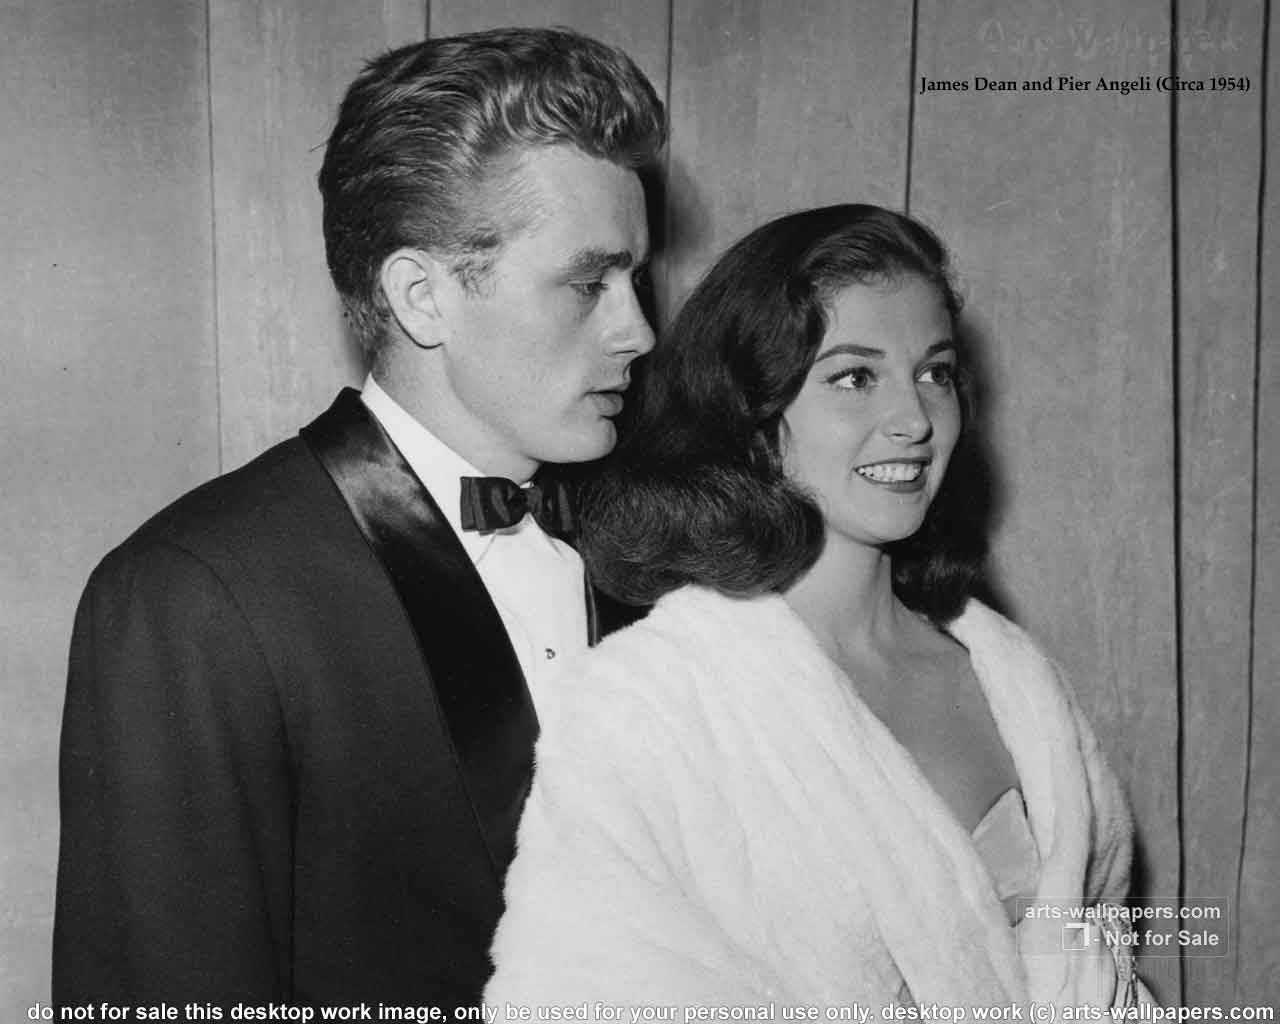 Ana Maria Pier Angeli pier and jimmy | james dean | pier angeli, james dean, dean